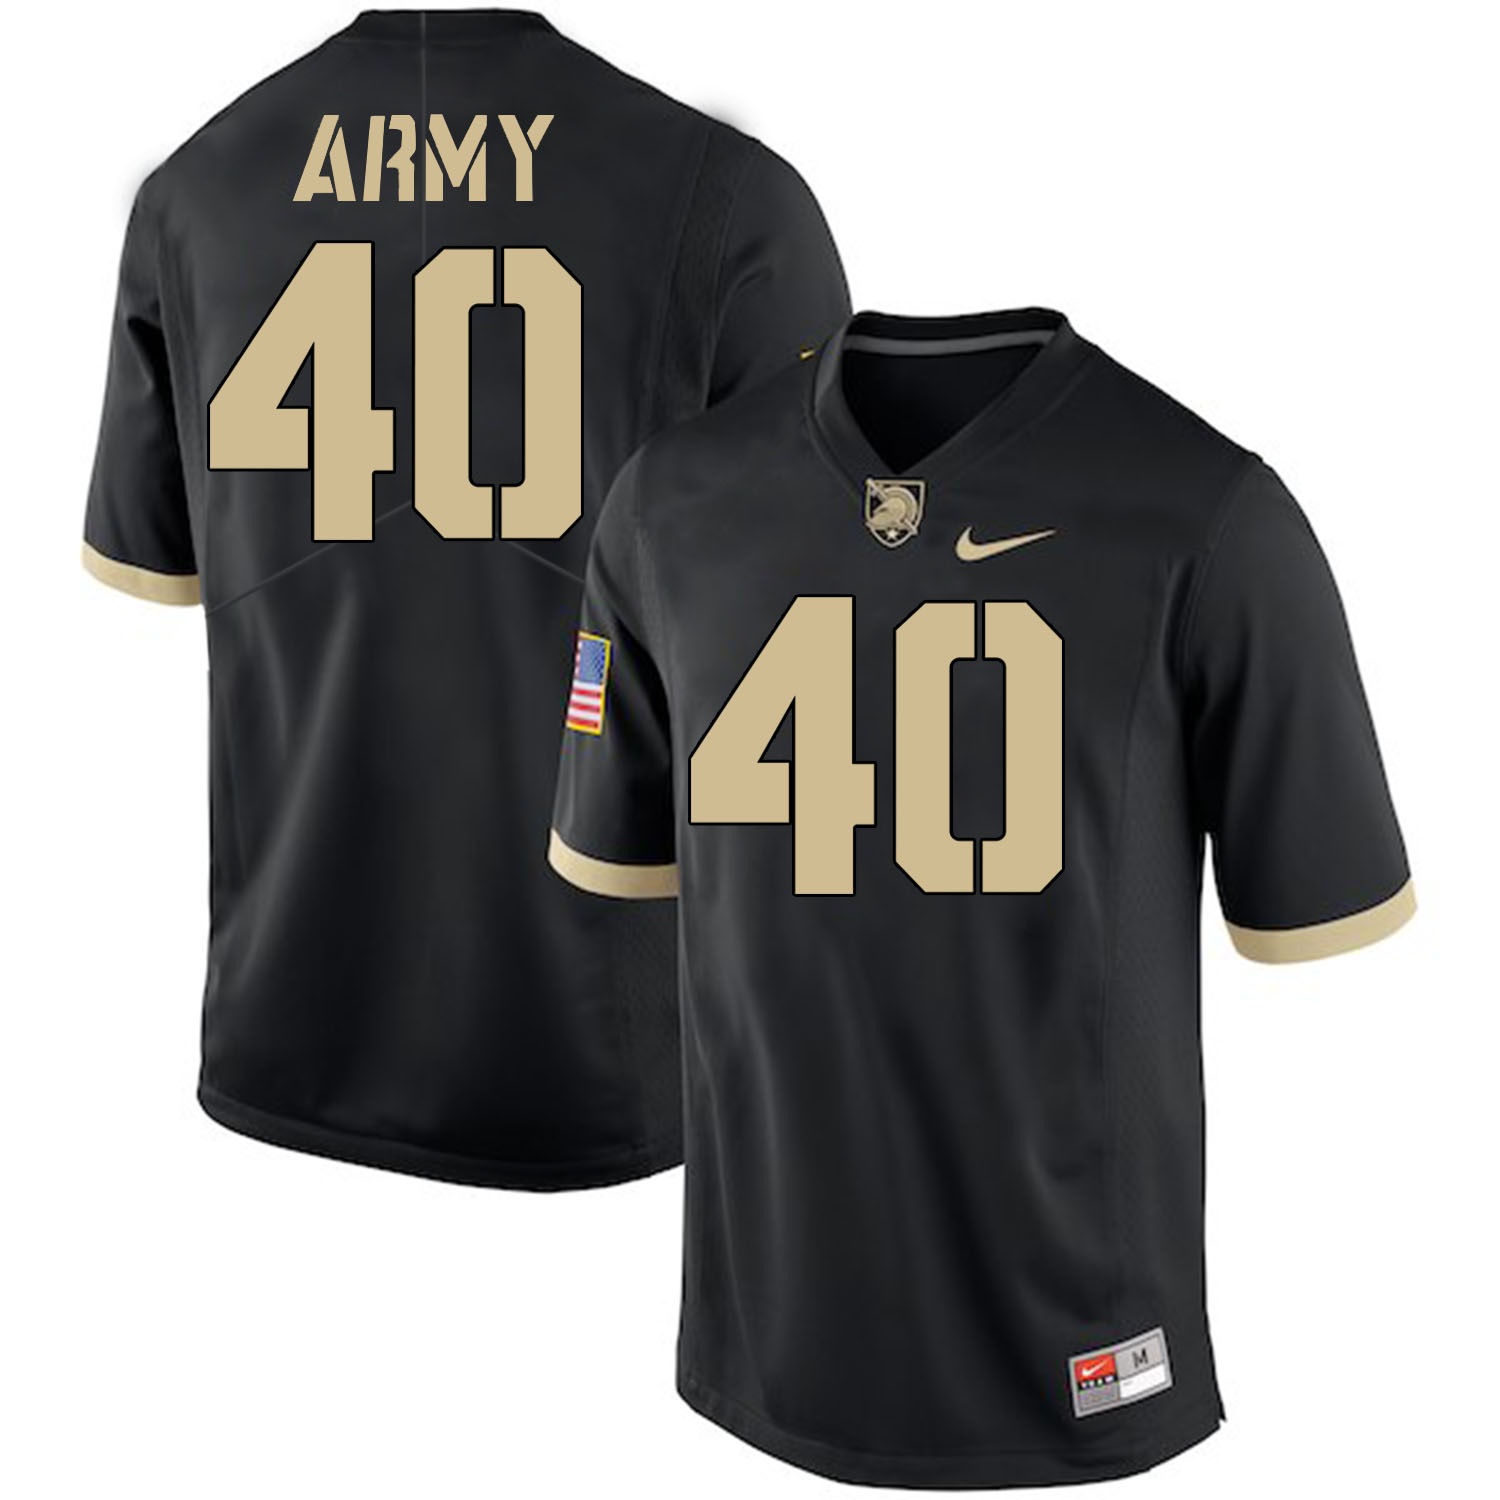 Army Black Knights 40 Andy Davidson Black College Football Jersey